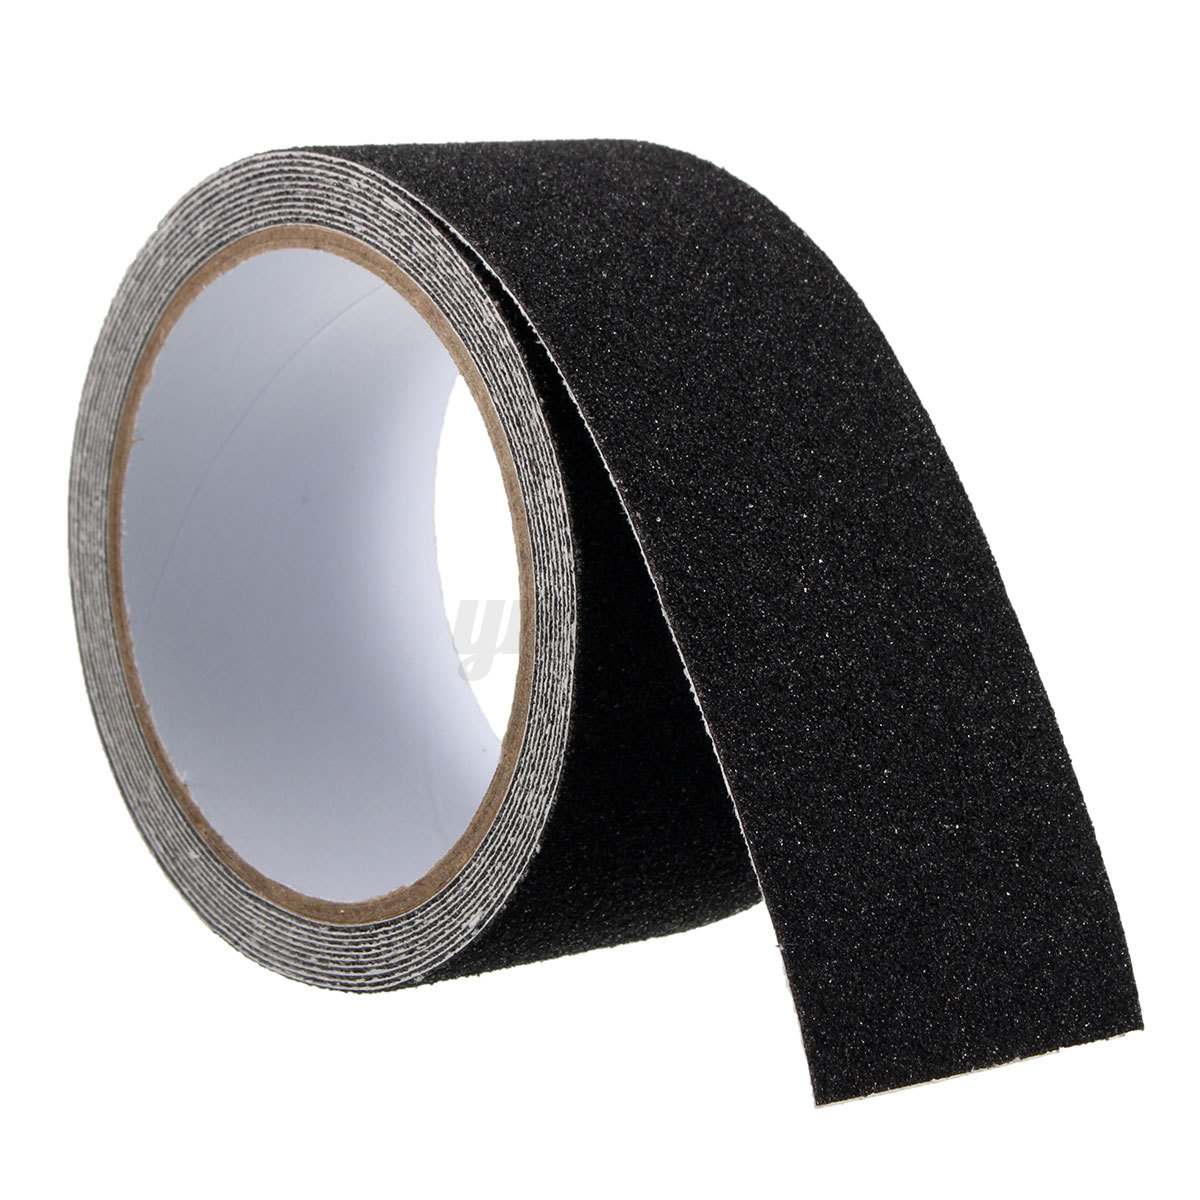 5cmx3m Anti Slip Tape Roll Non Slip Strips High Grip